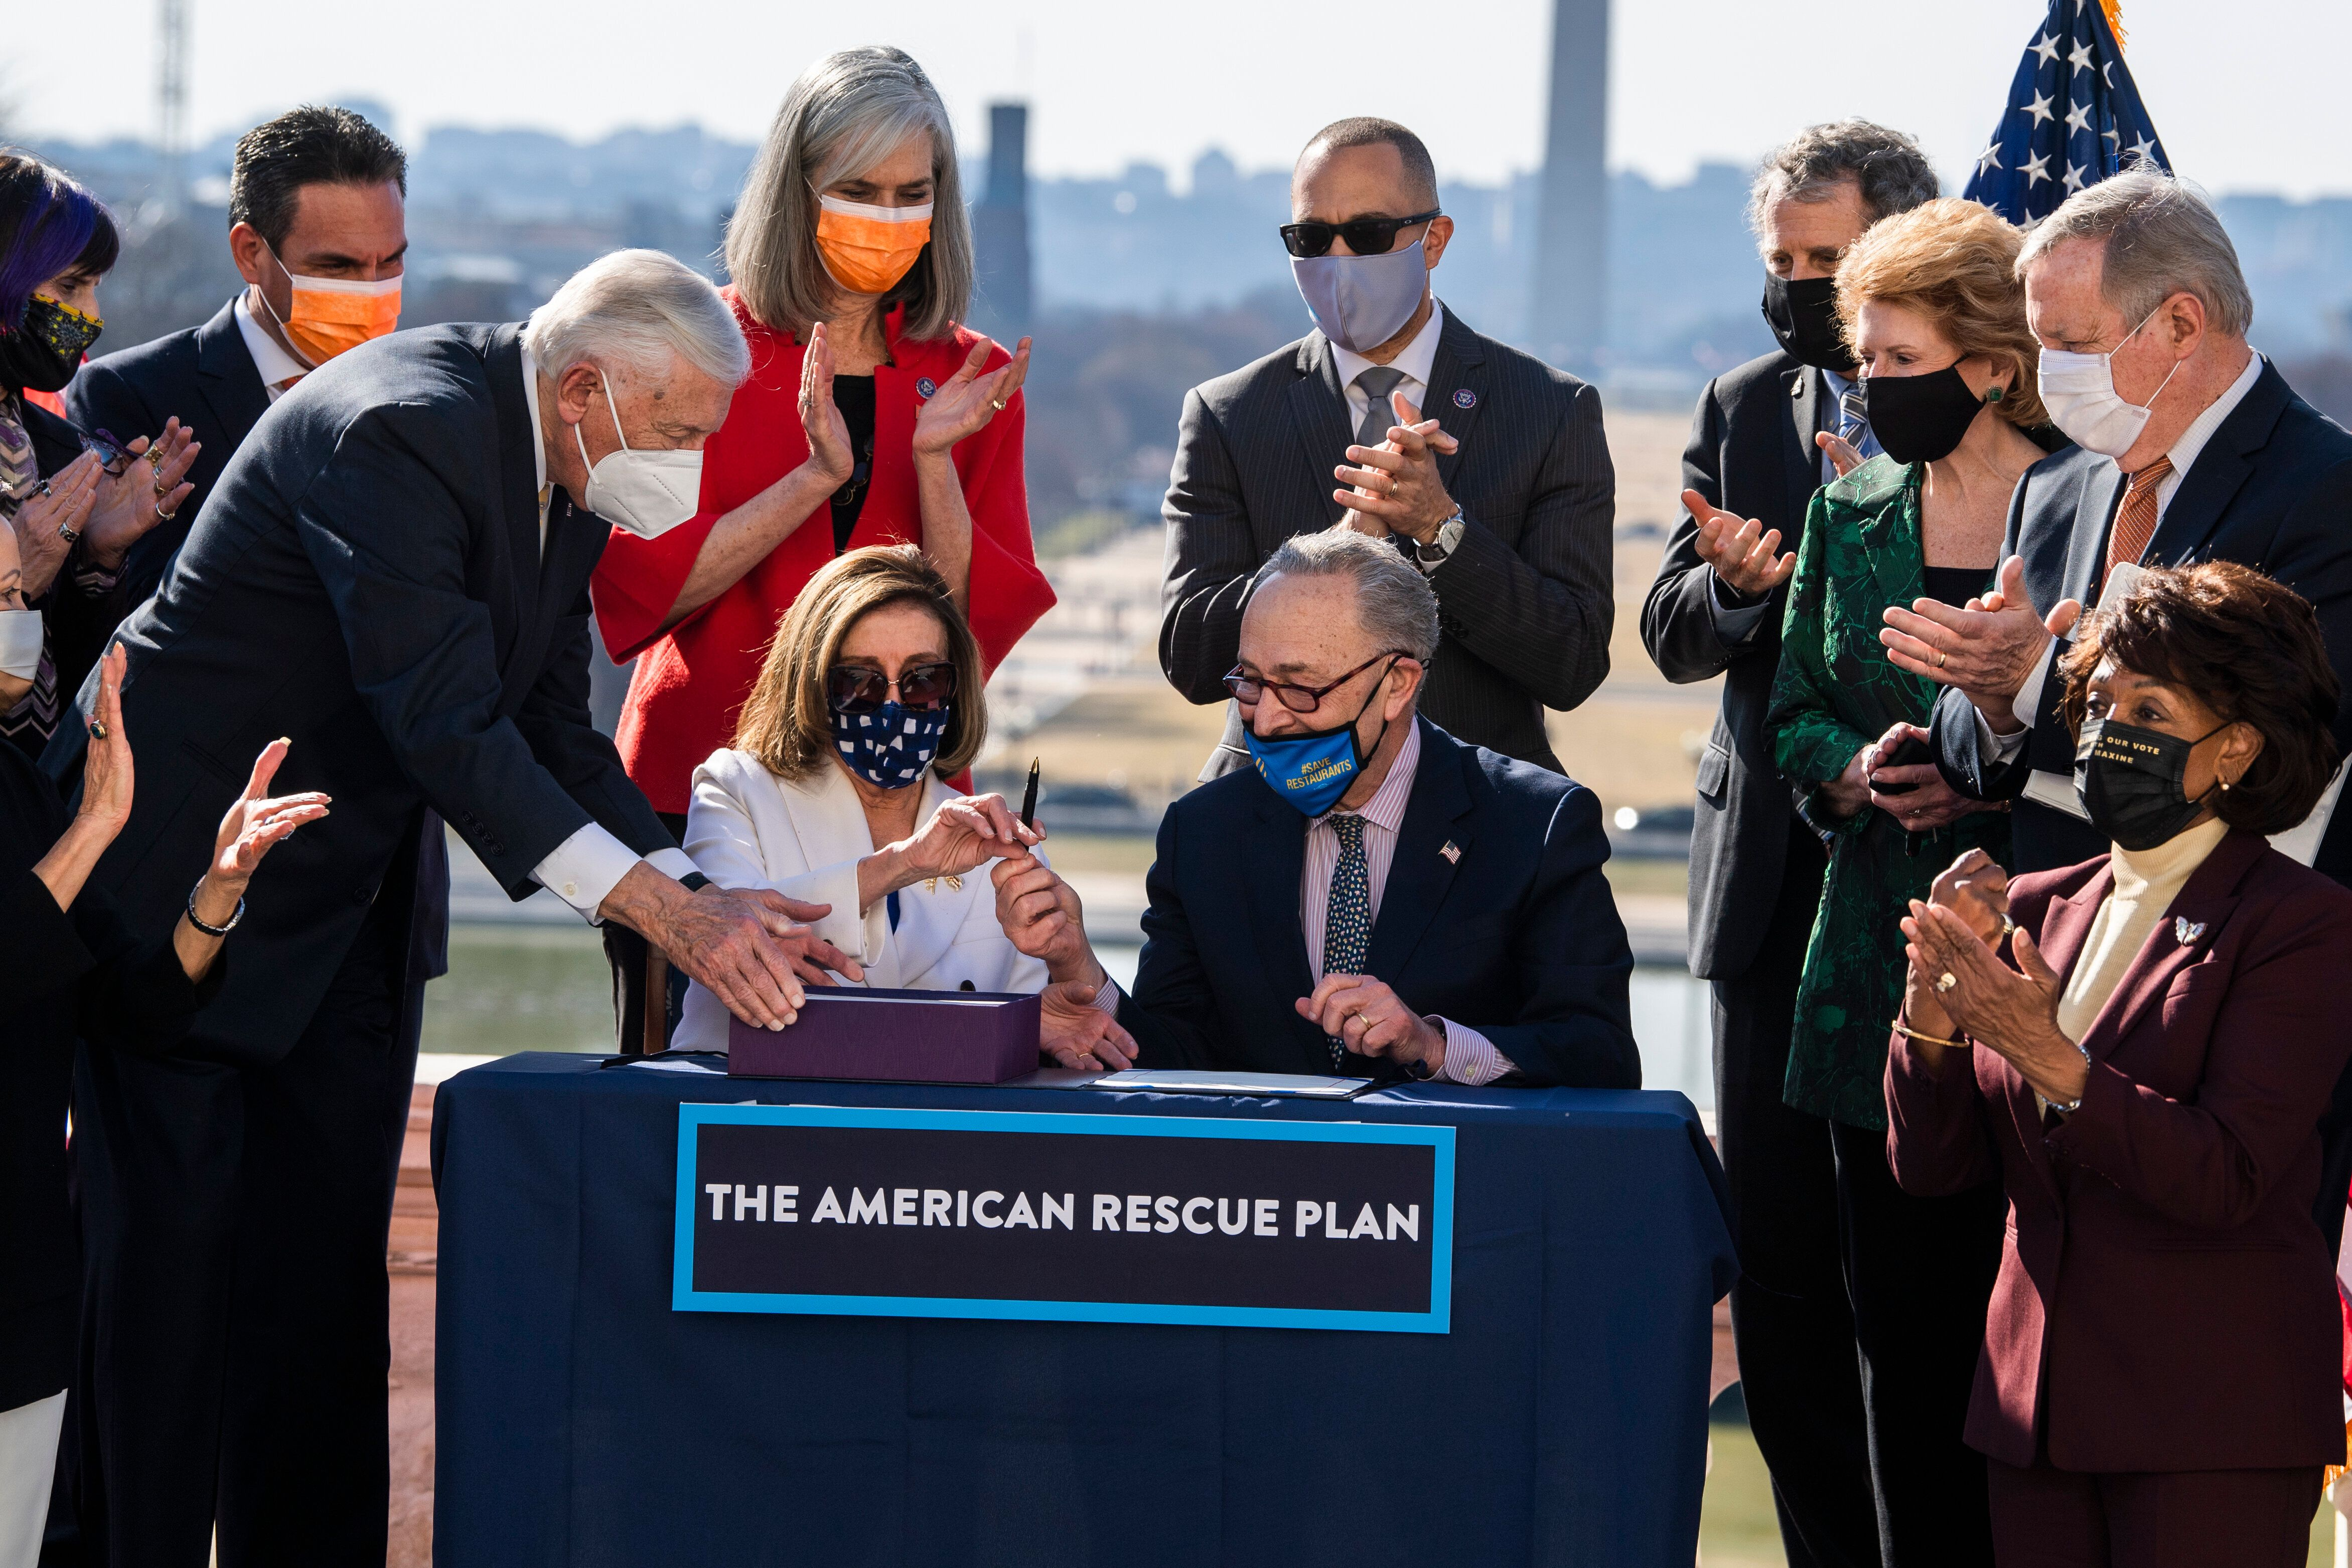 Speaker of the House Nancy Pelosi (D-Calif.) and Senate Majority Leader Chuck Schumer (D-N.Y.), center, sign the American Res